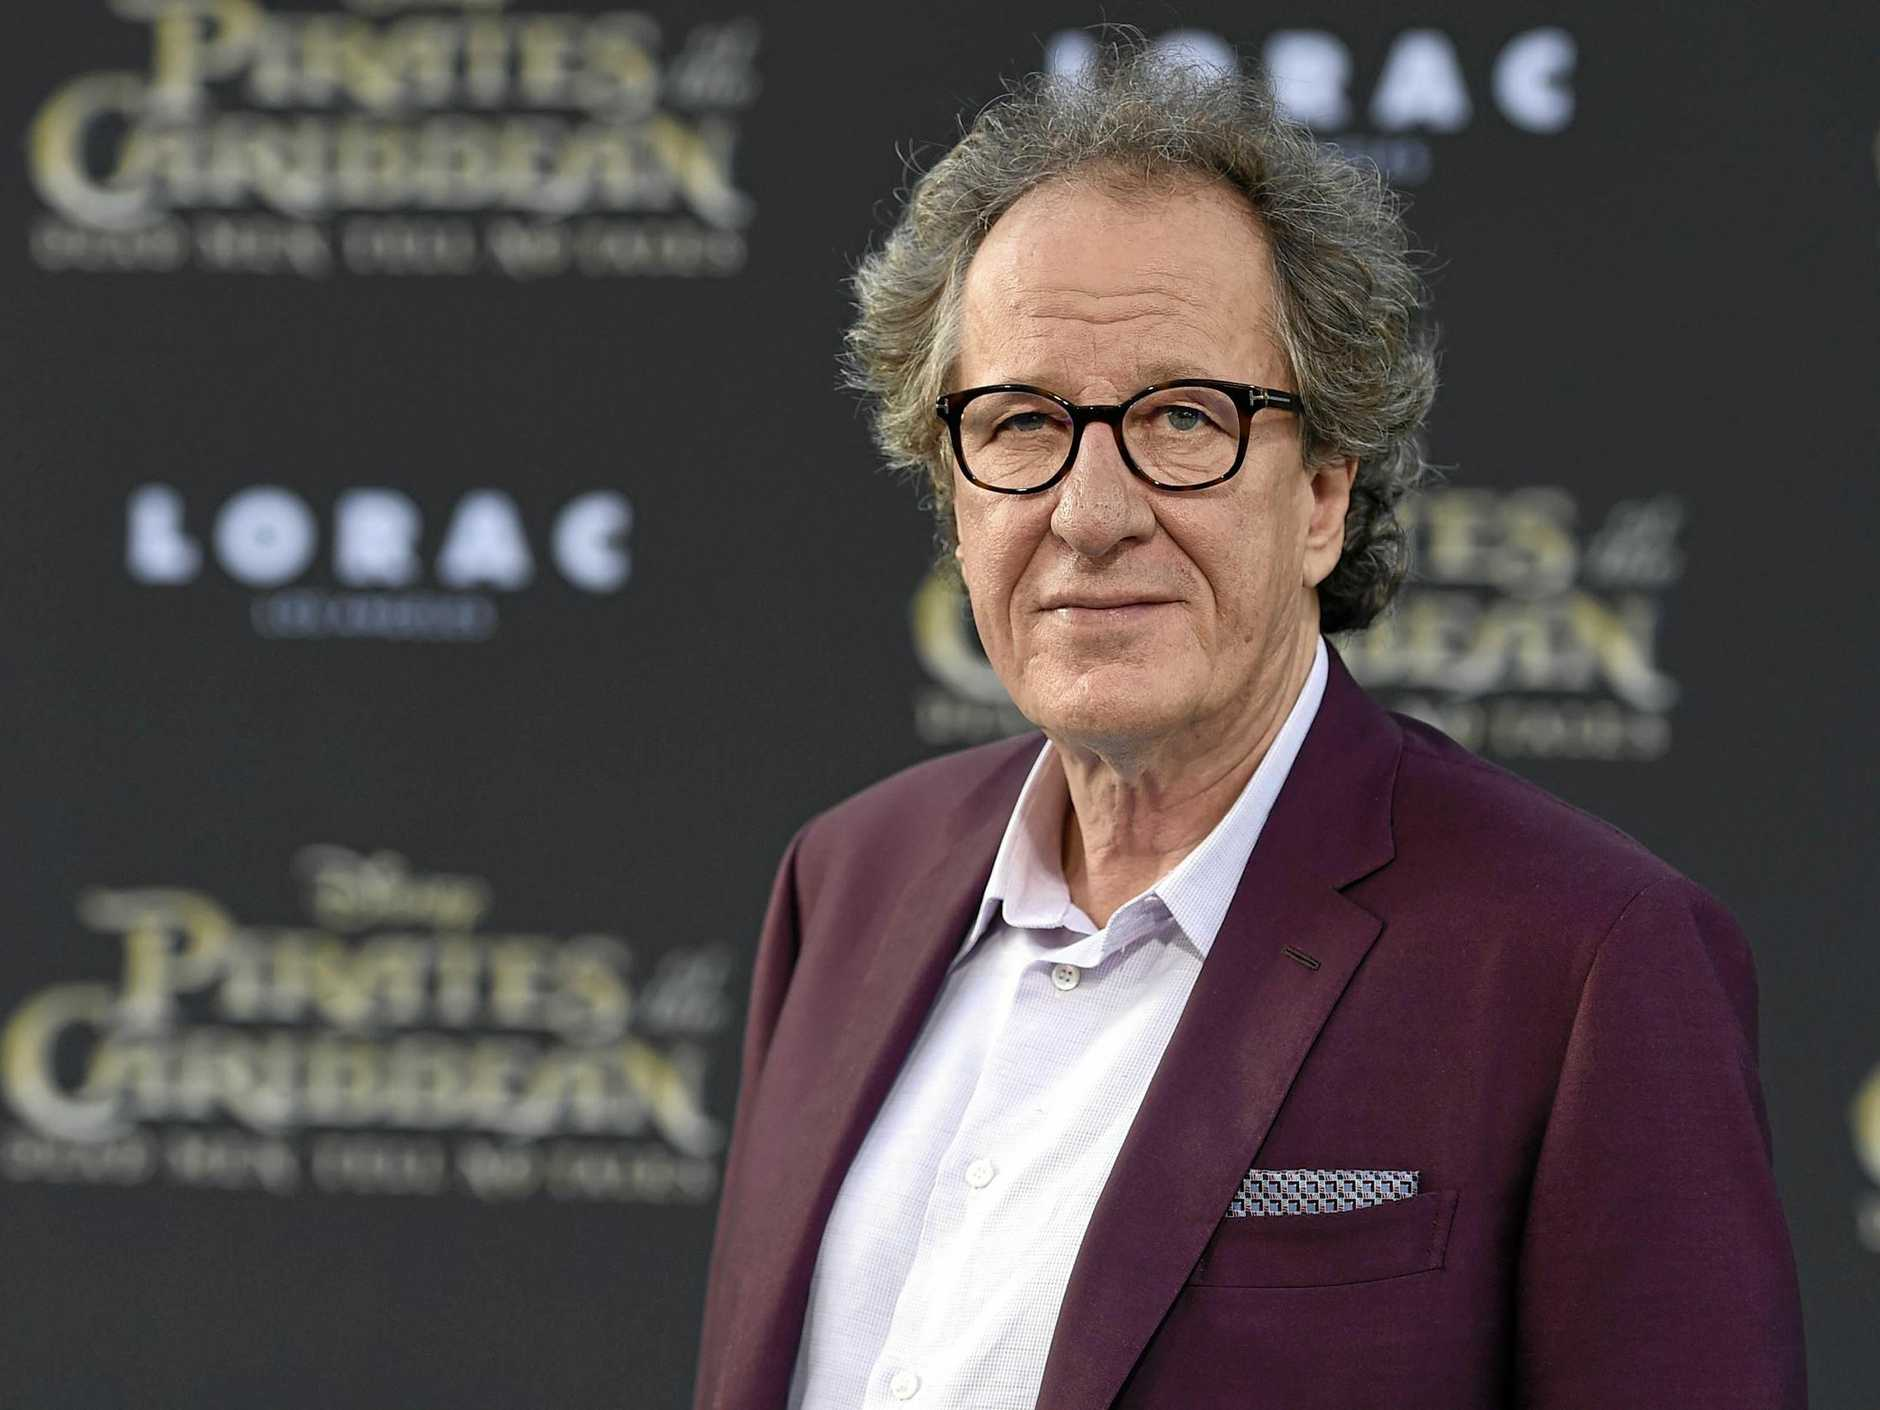 FILE - In this May 18, 2017 file photo, Geoffrey Rush arrives at the Los Angeles premiere of